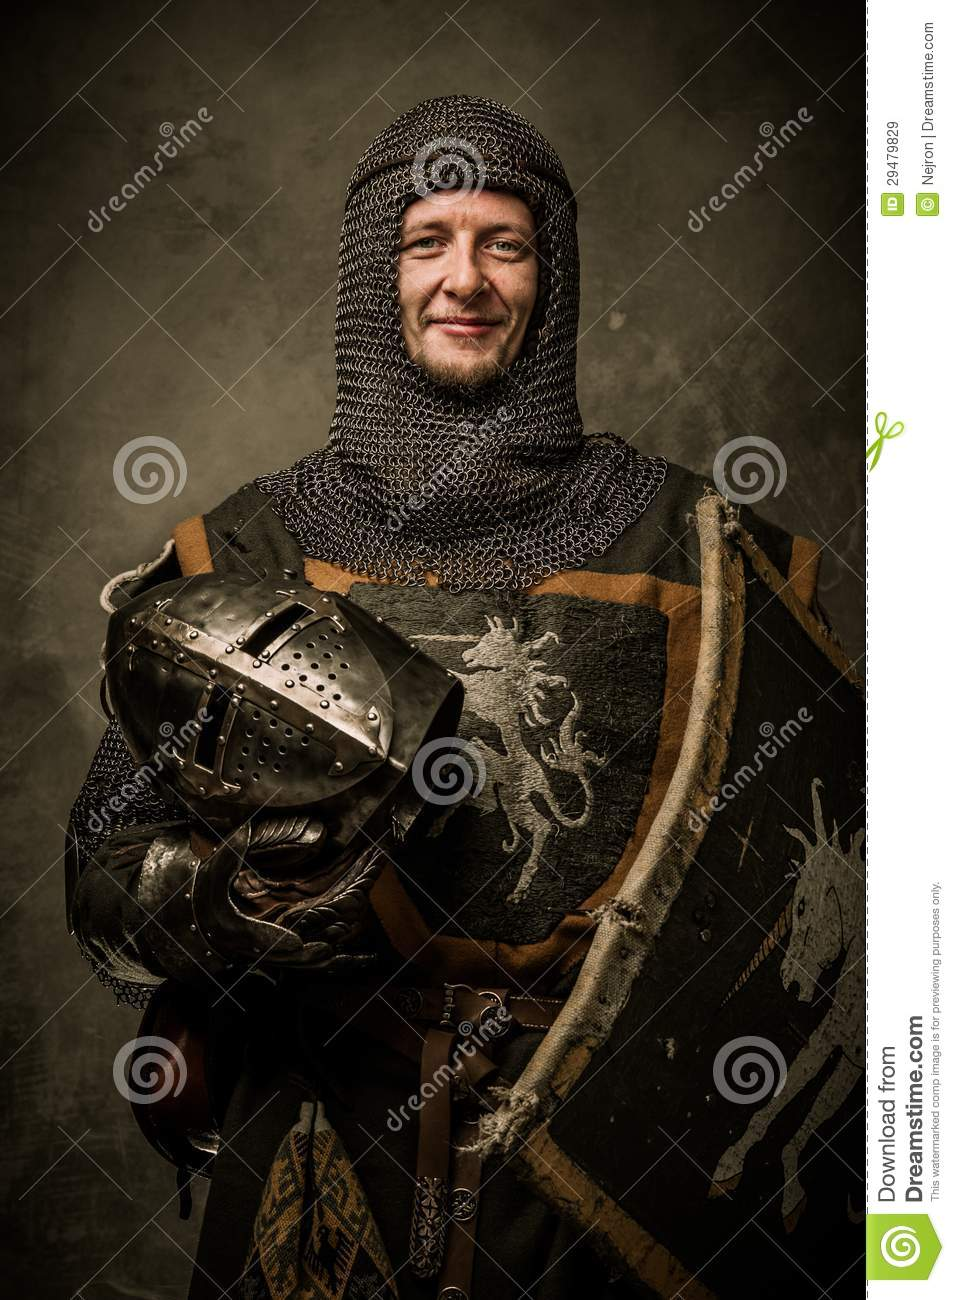 Royalty Free Stock Images  Knight with shieldKnight With Shield